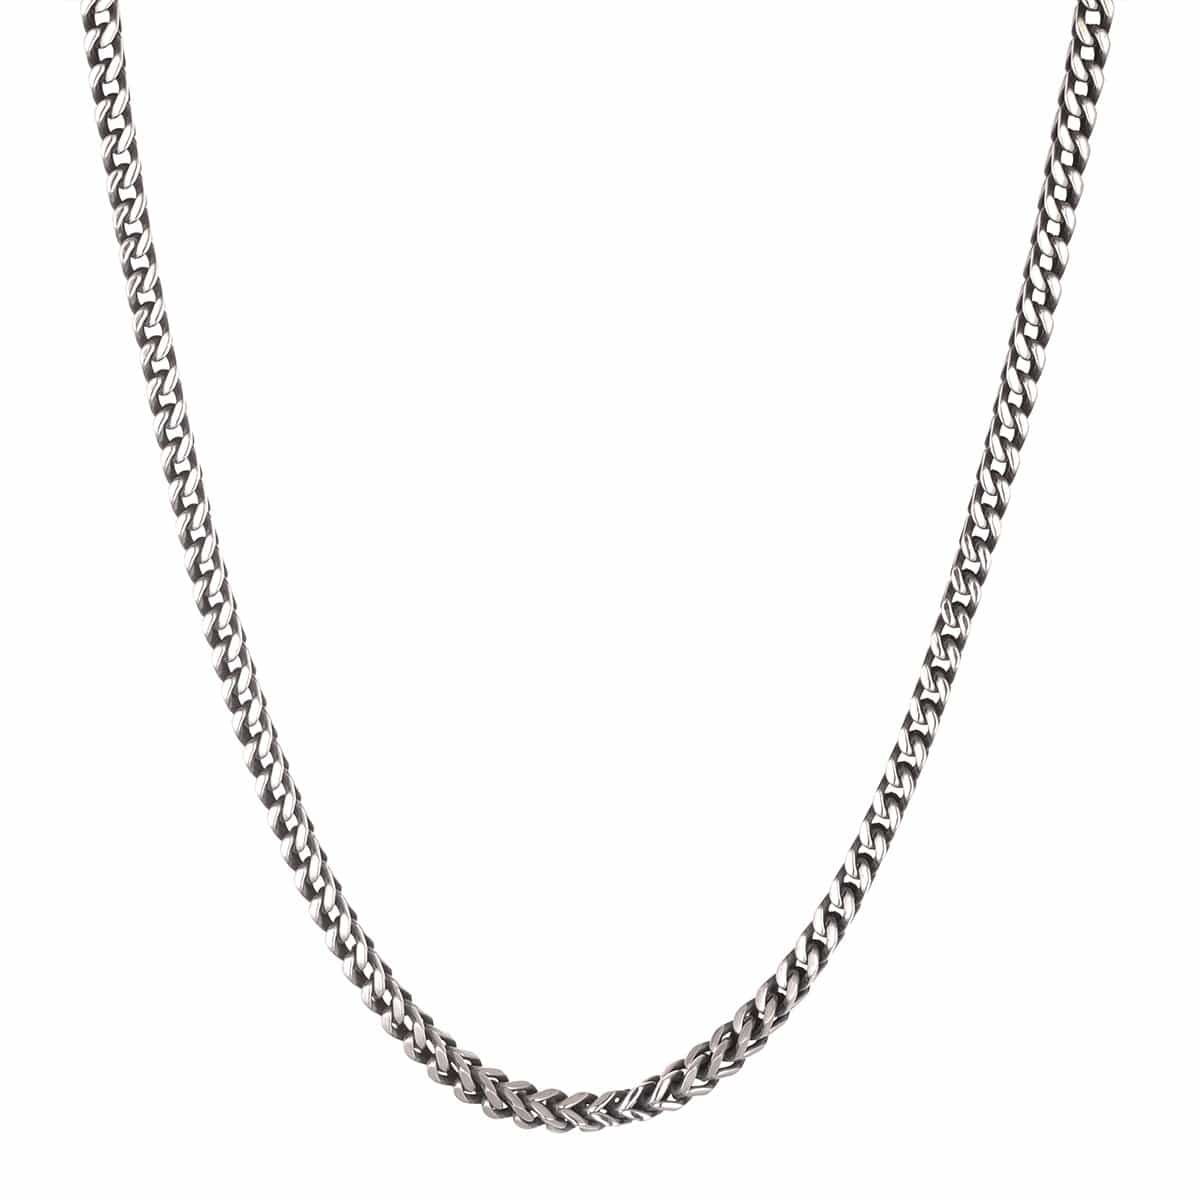 Darkened Silver Stainless Steel 5mm Franco Link Chain Chains 20 Inch